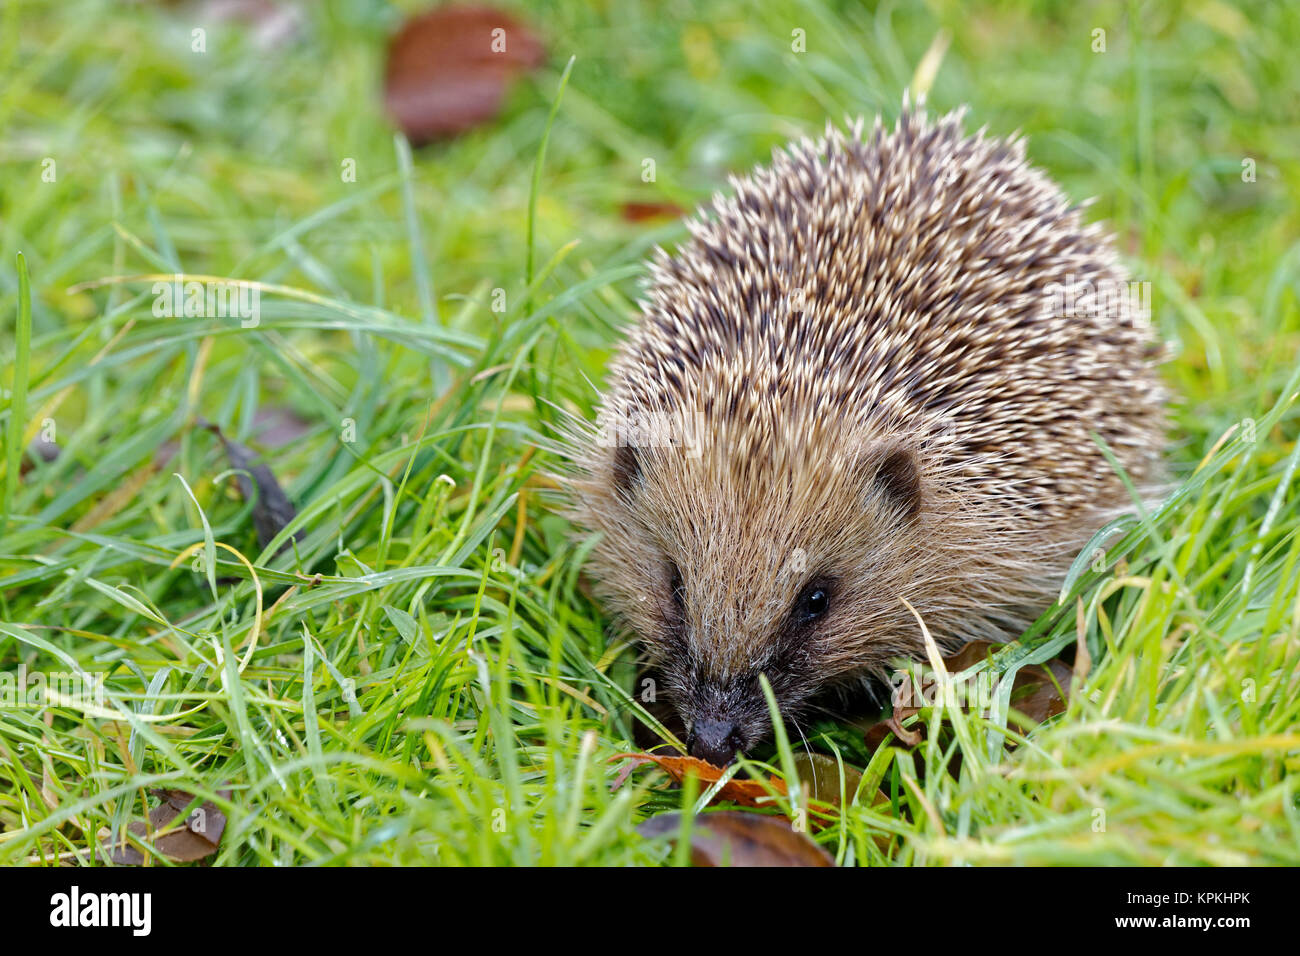 Eure et loir, France. 6th Dec, 2017. Close-up of a hedgehog (Erinaceus europaeus) walking through the grass in Eure - Stock Image